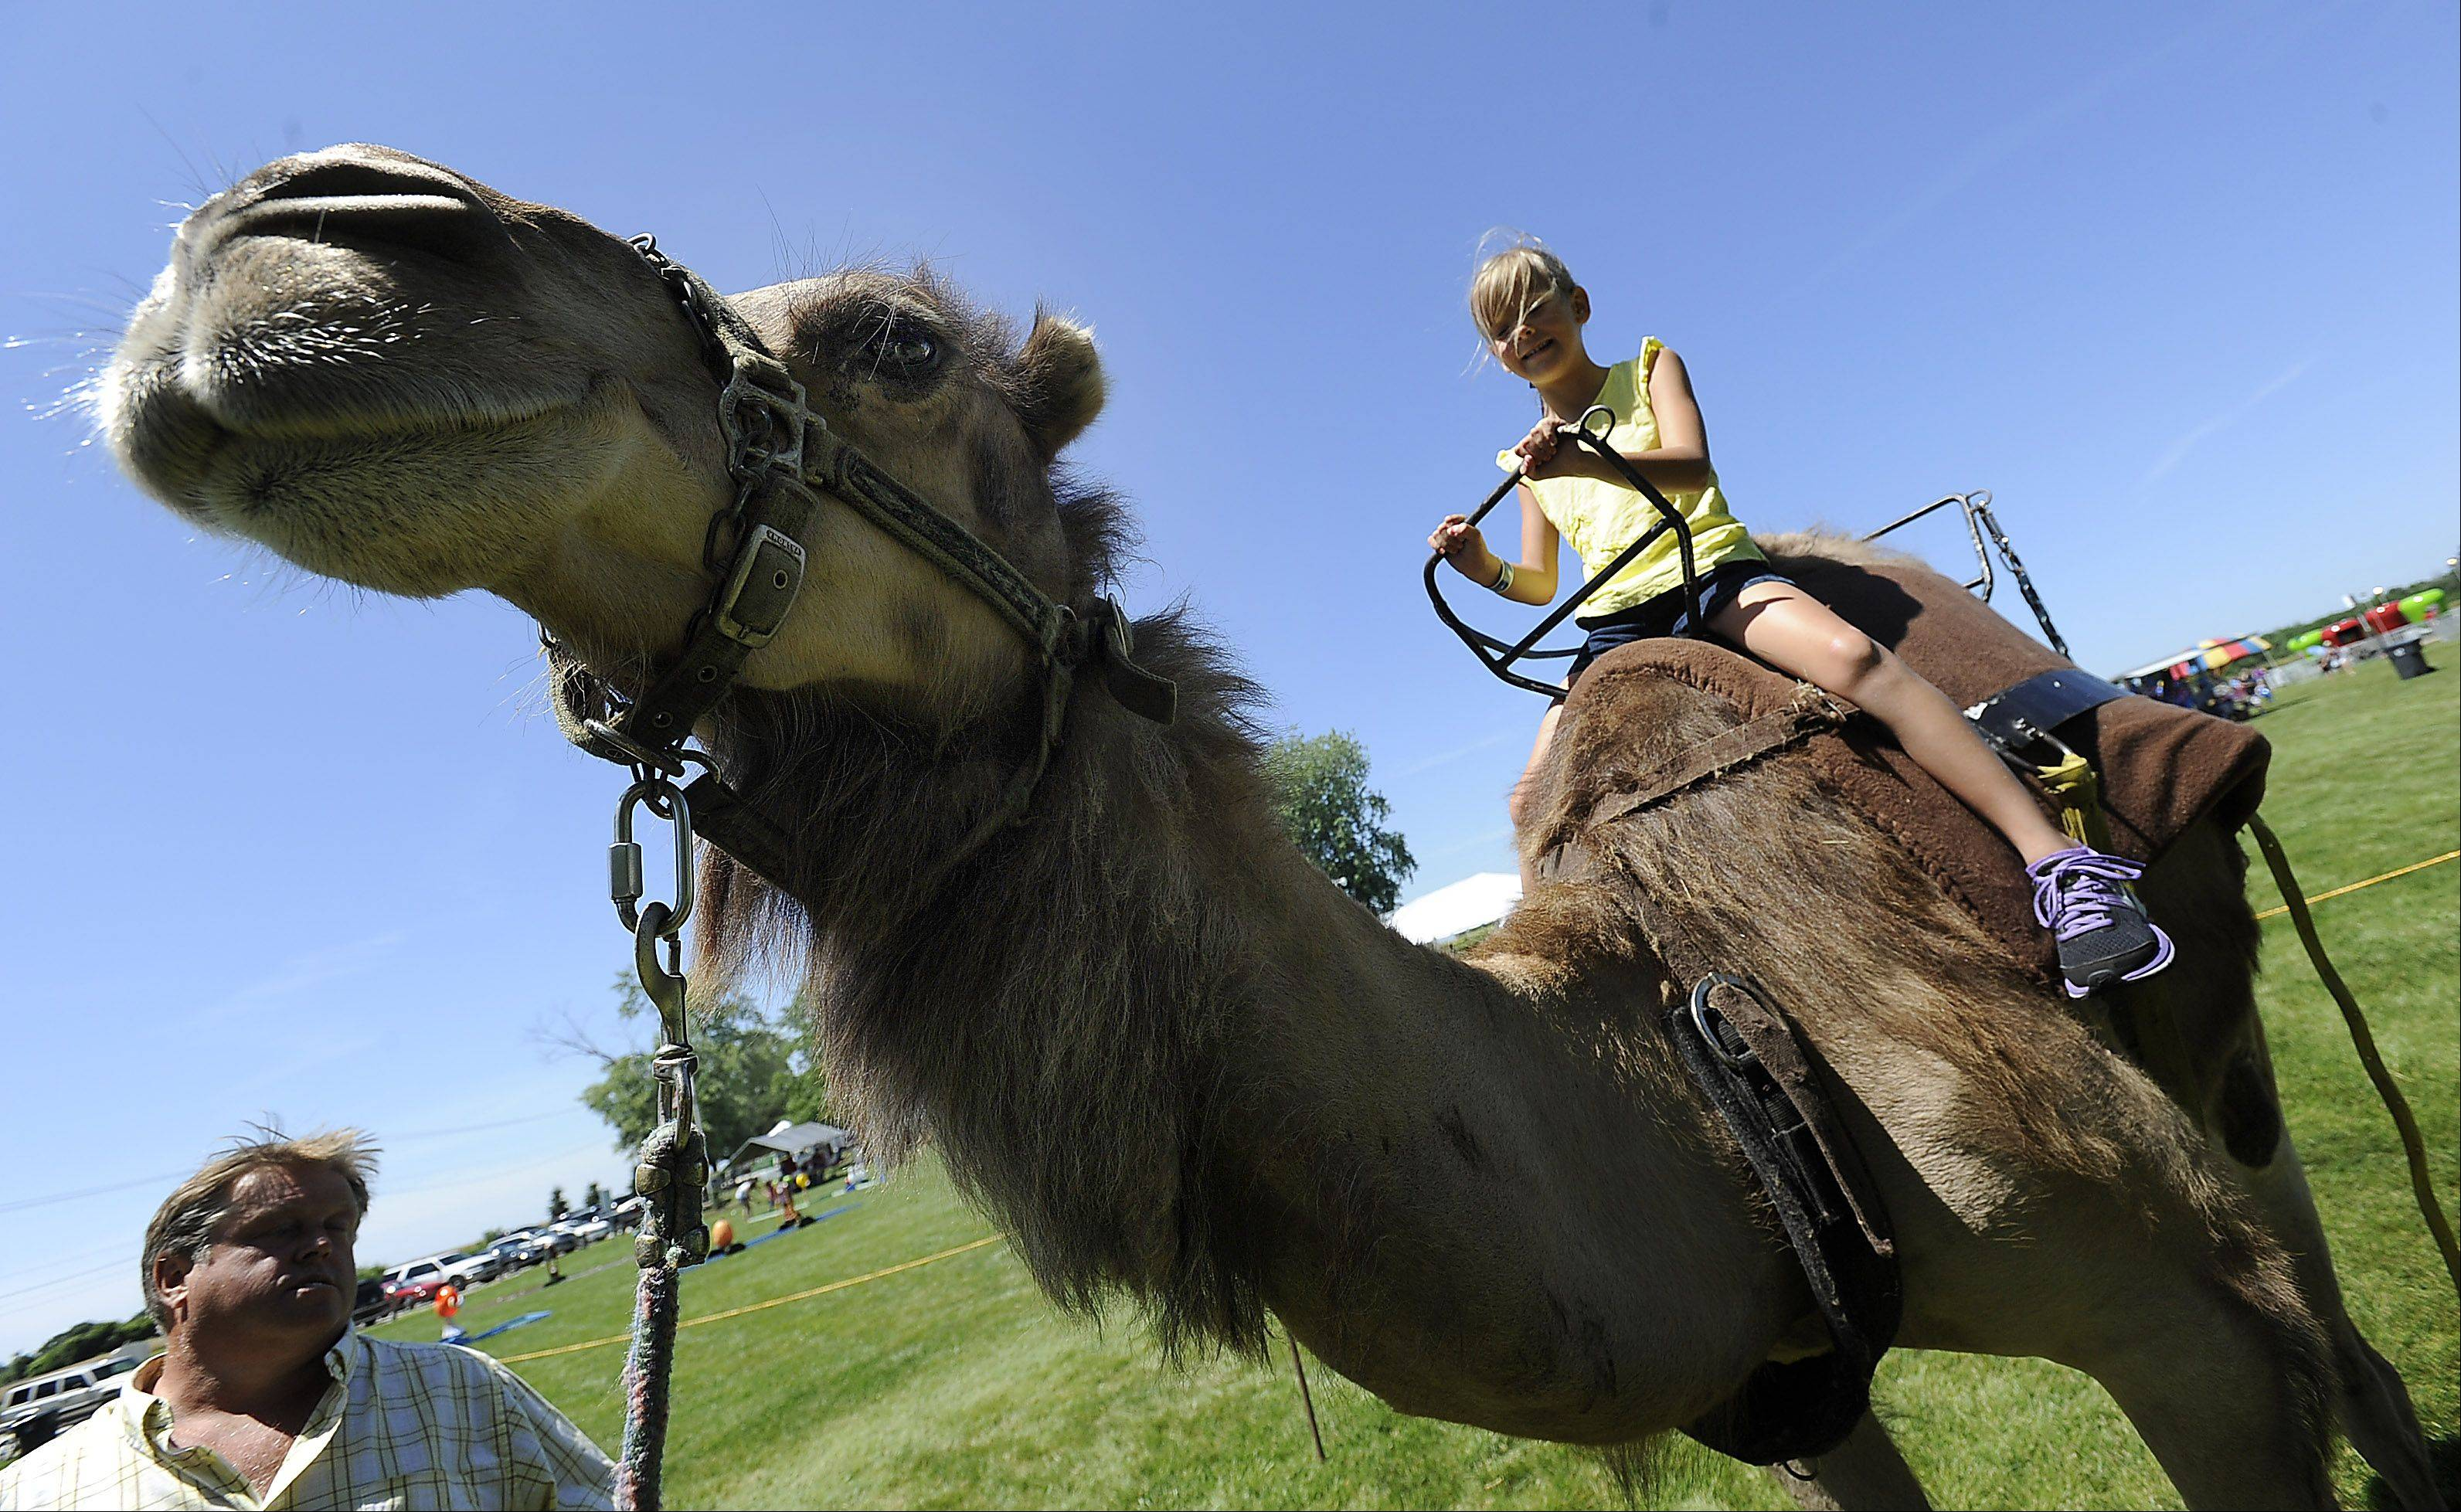 Georgia Killian, 6, of Dallas, Texas, flew on a plane to Chicago by herself to visit her grandparents in Gurnee and ended up riding a camel named Charley at the Grandwood Park Summerfest on Saturday.